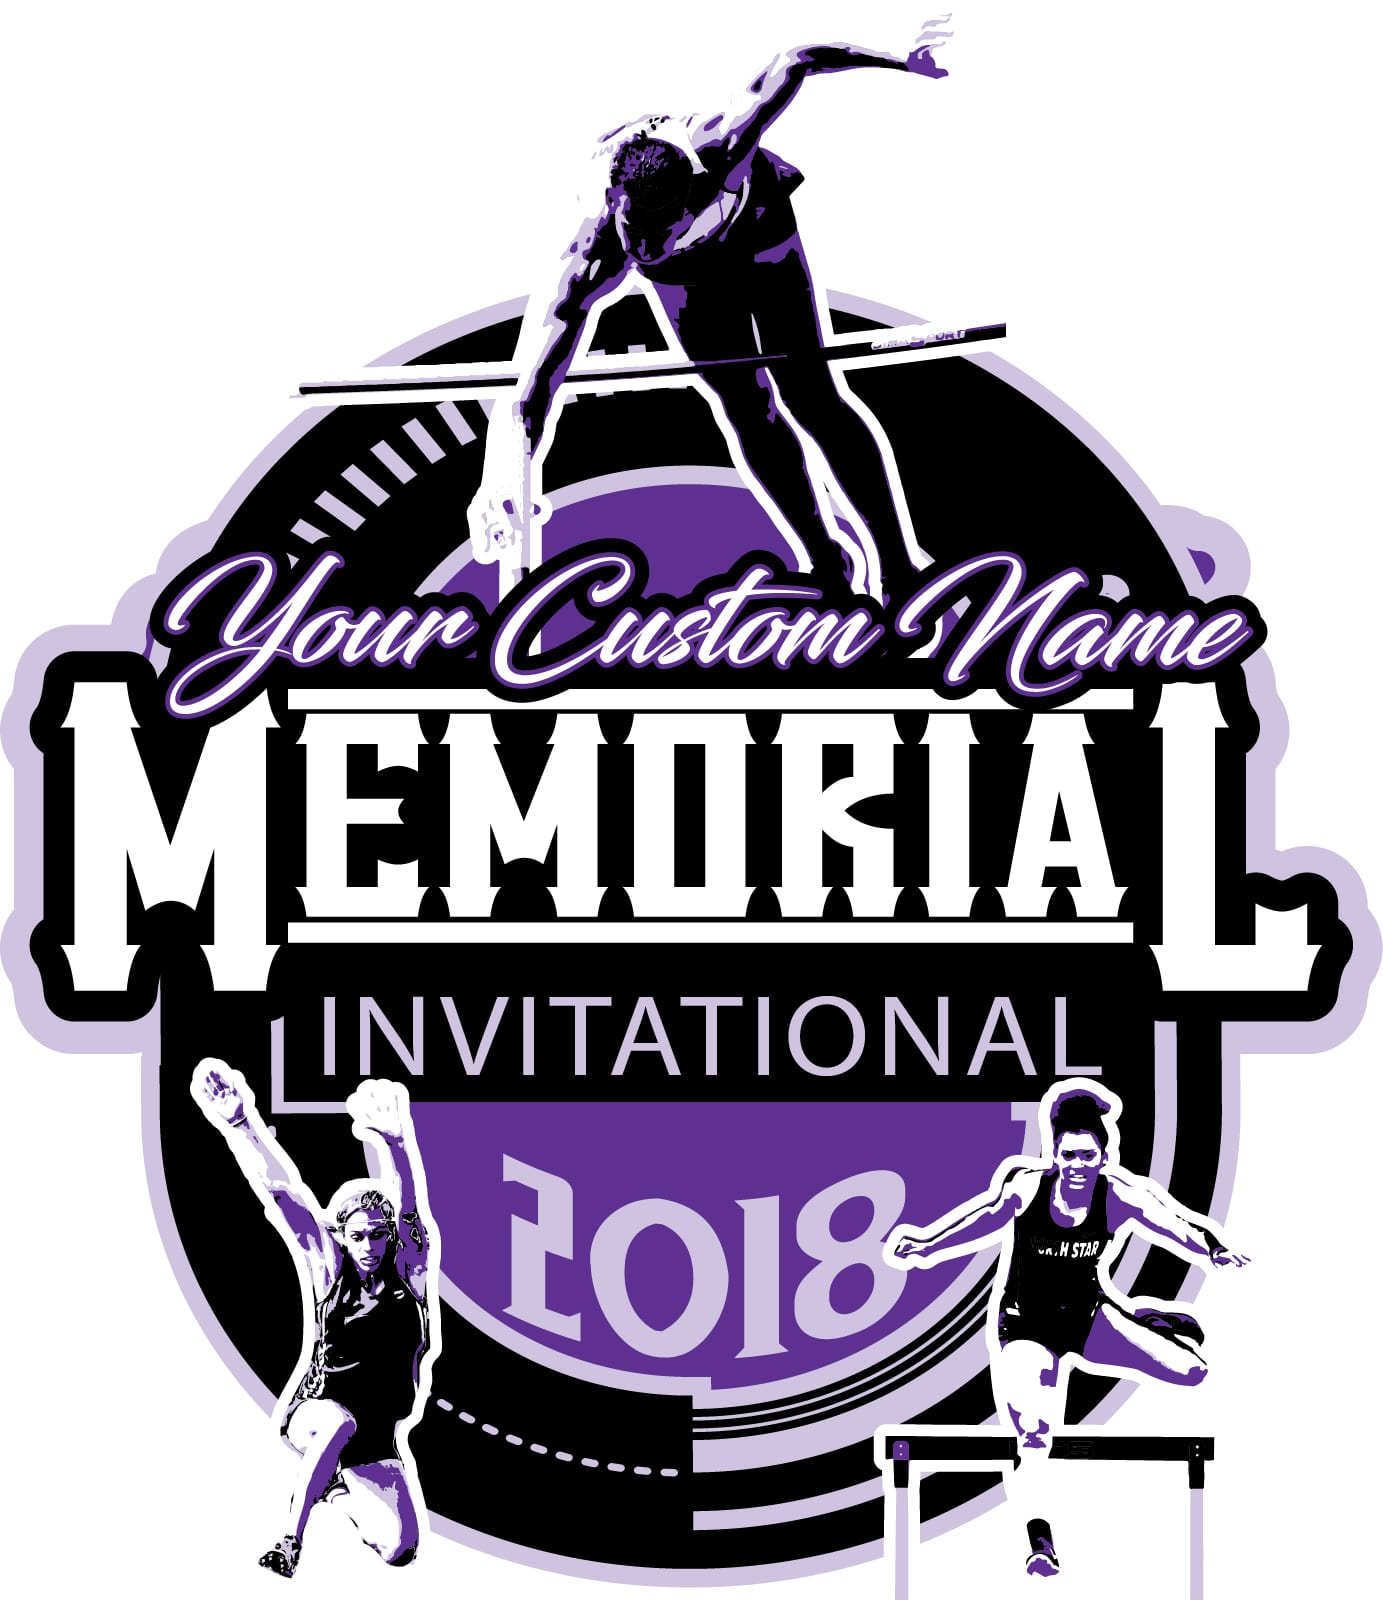 MEMORIAL-TRACK-AND-FIELD-INVITATIONAL-2018-adjustable-t-shirt-logo-design